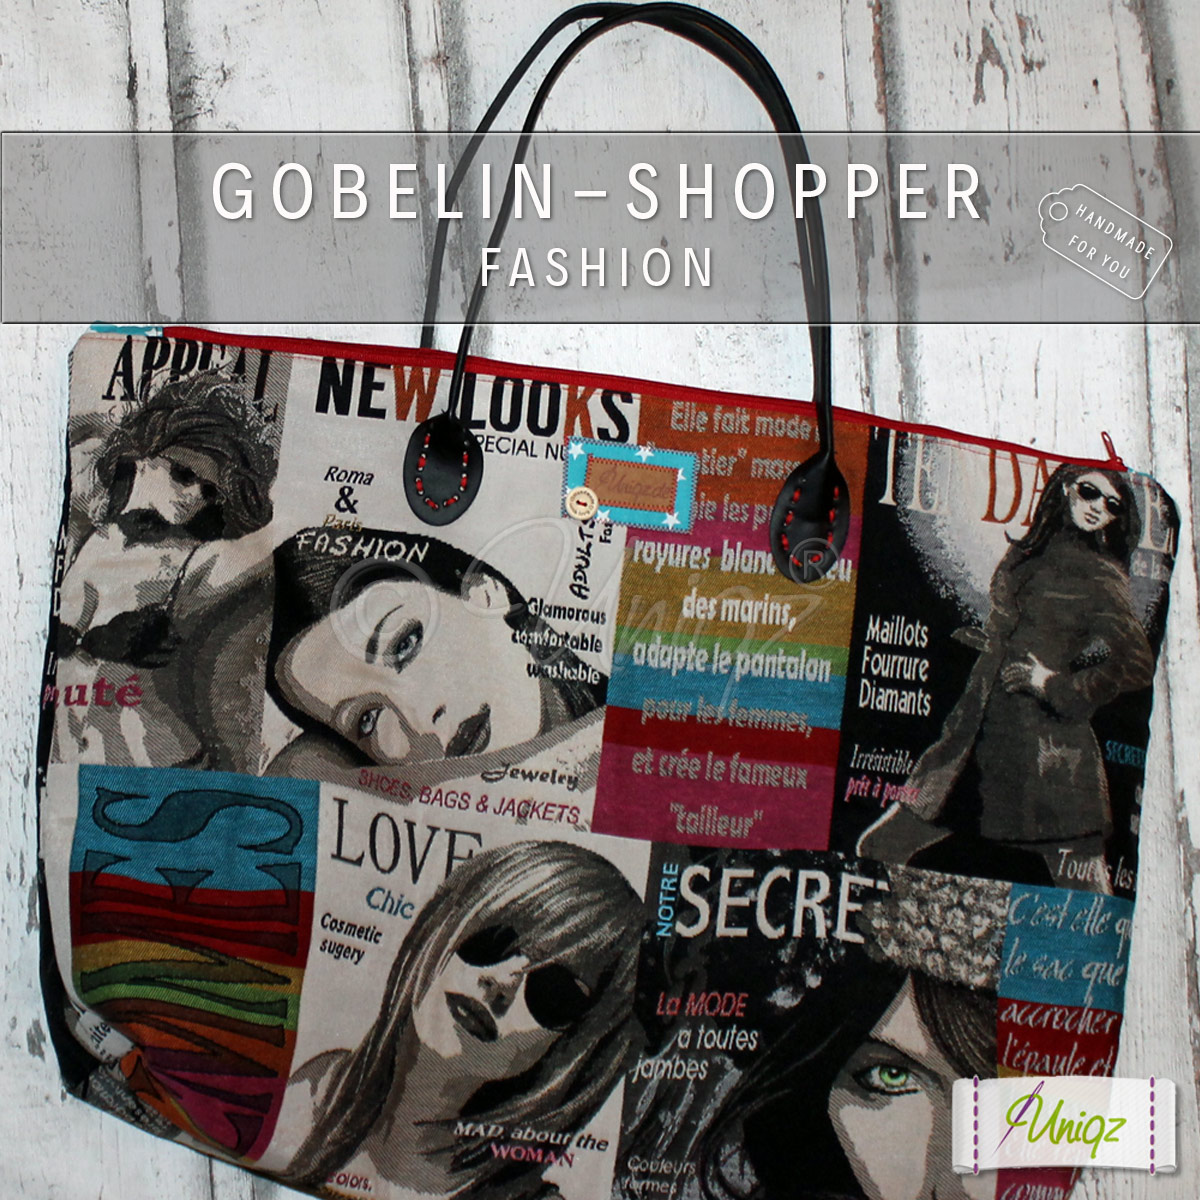 Gobelin Shopper Fashion